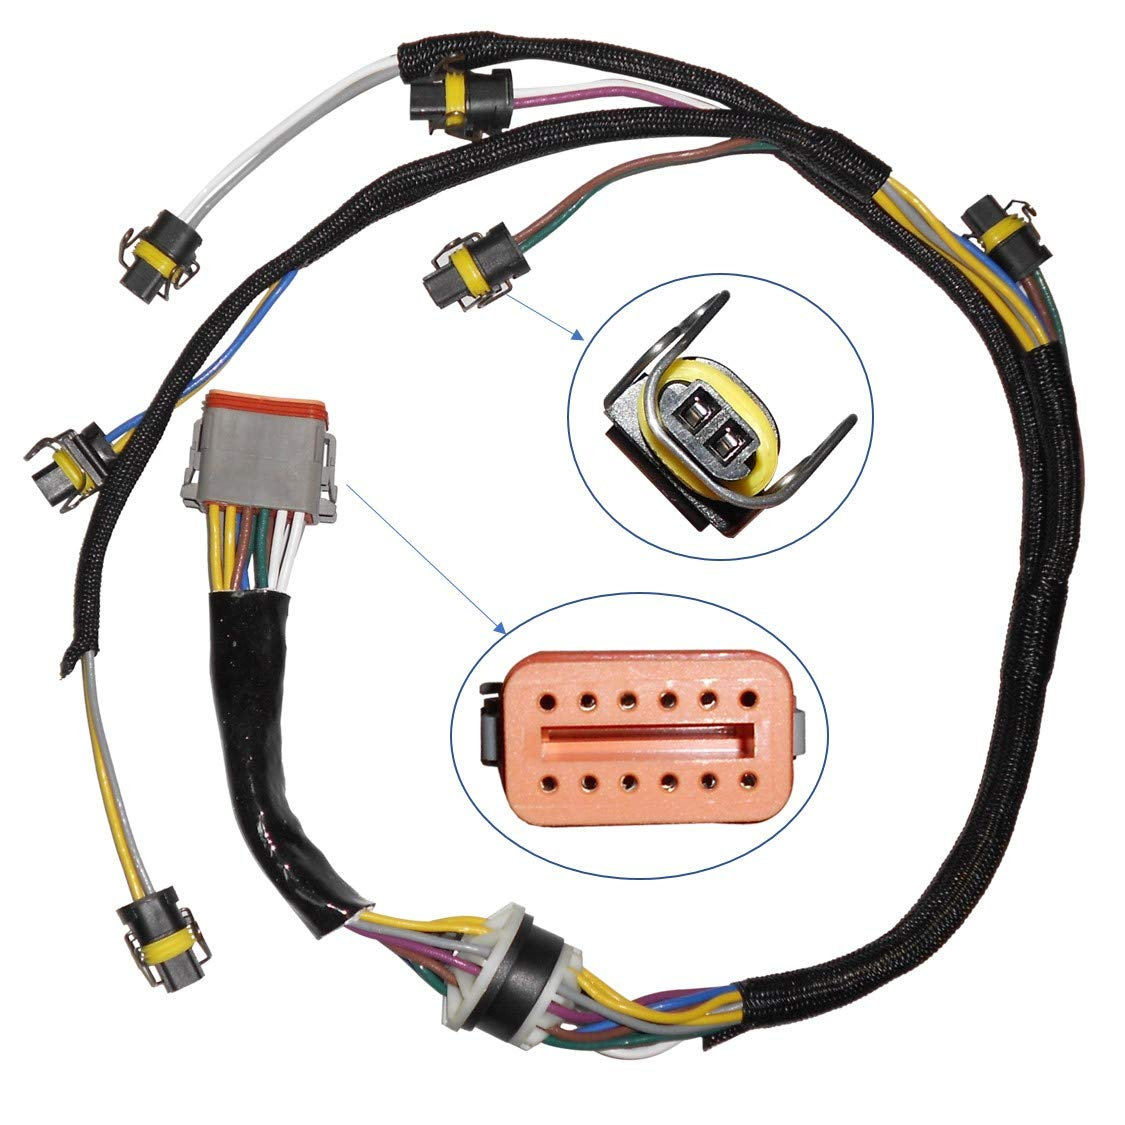 Online Reading Cat 3126b Fuel Injector Wiring Harness ... on